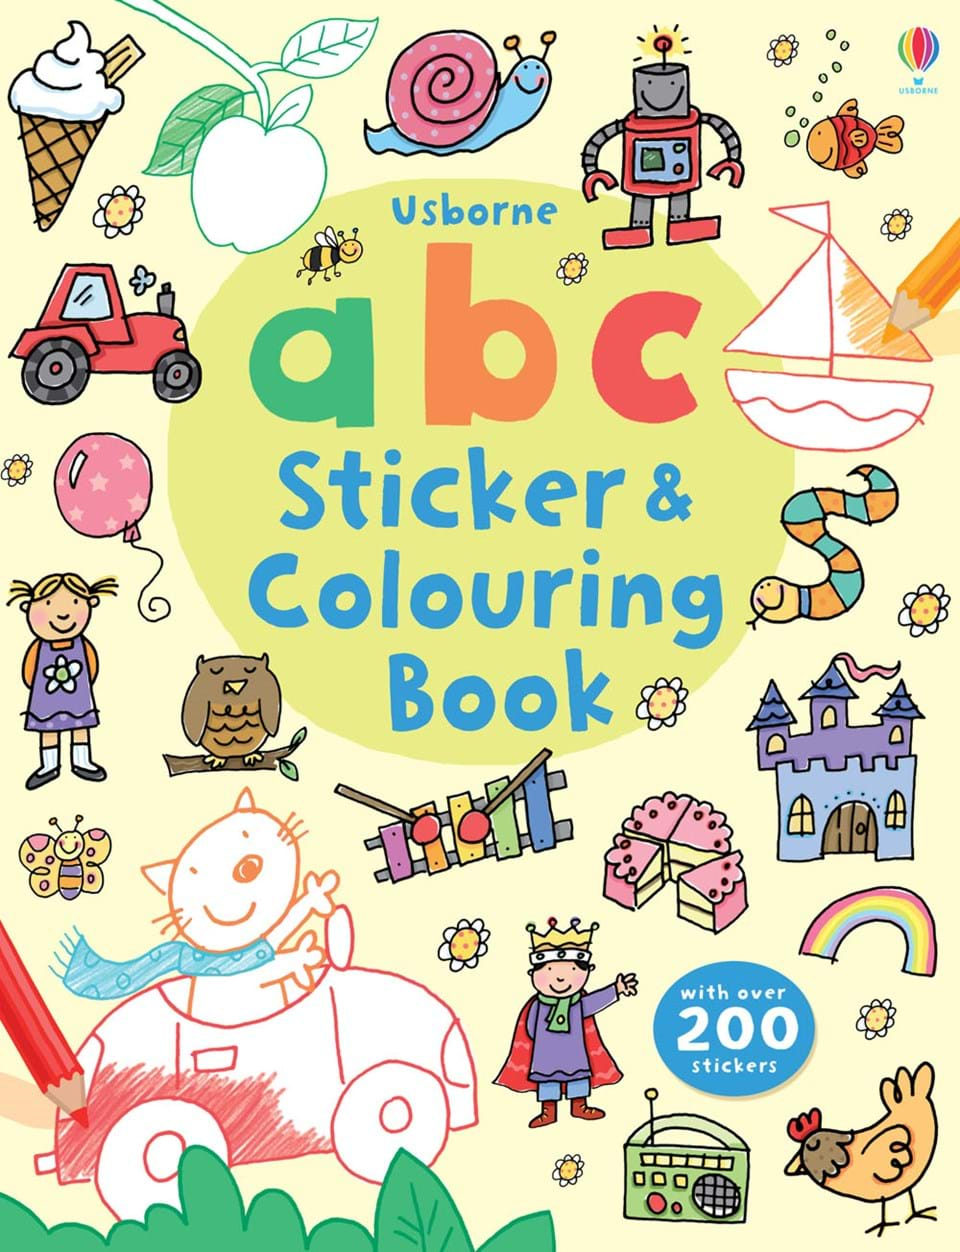 "ABC sticker and colouring book"" at Usborne Books at Home"